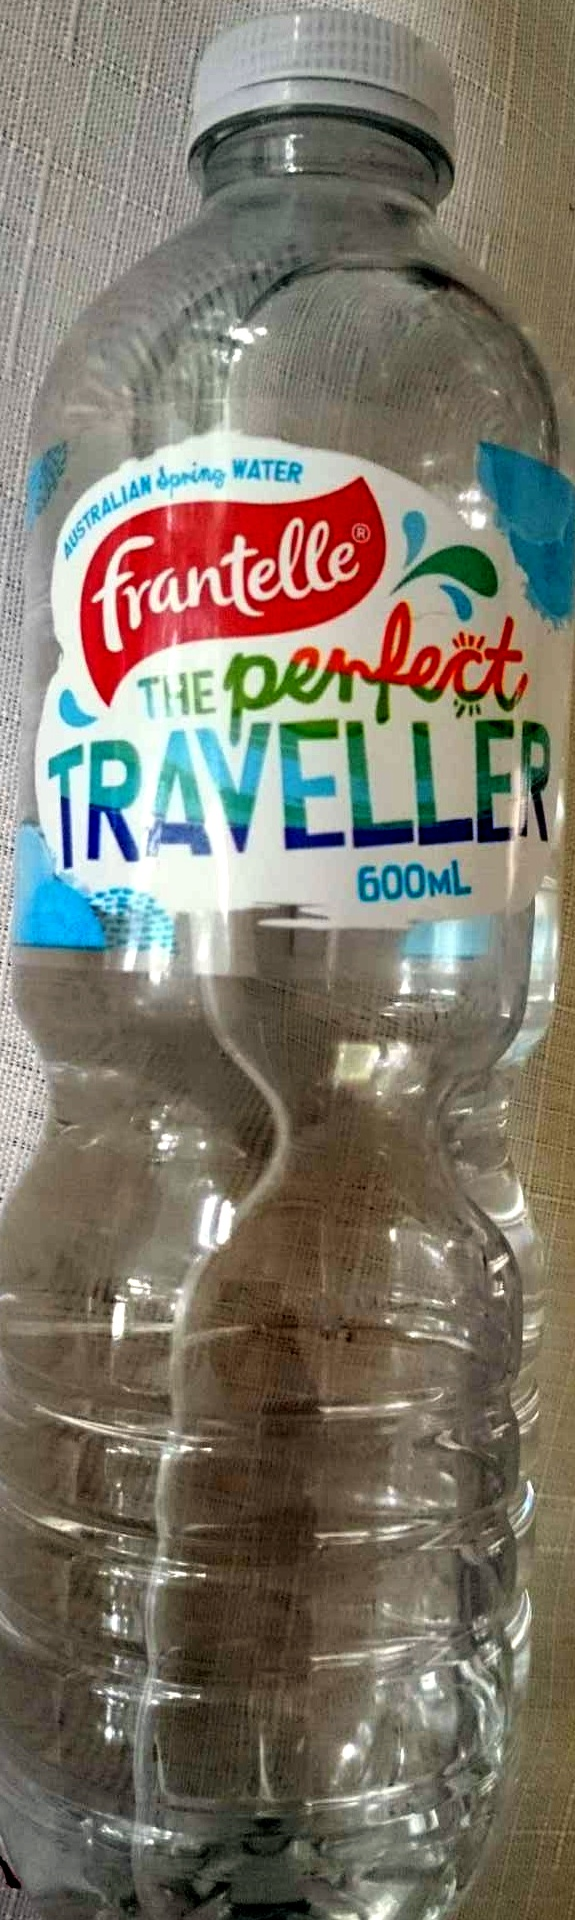 The Perfect Traveller Water - Product - en